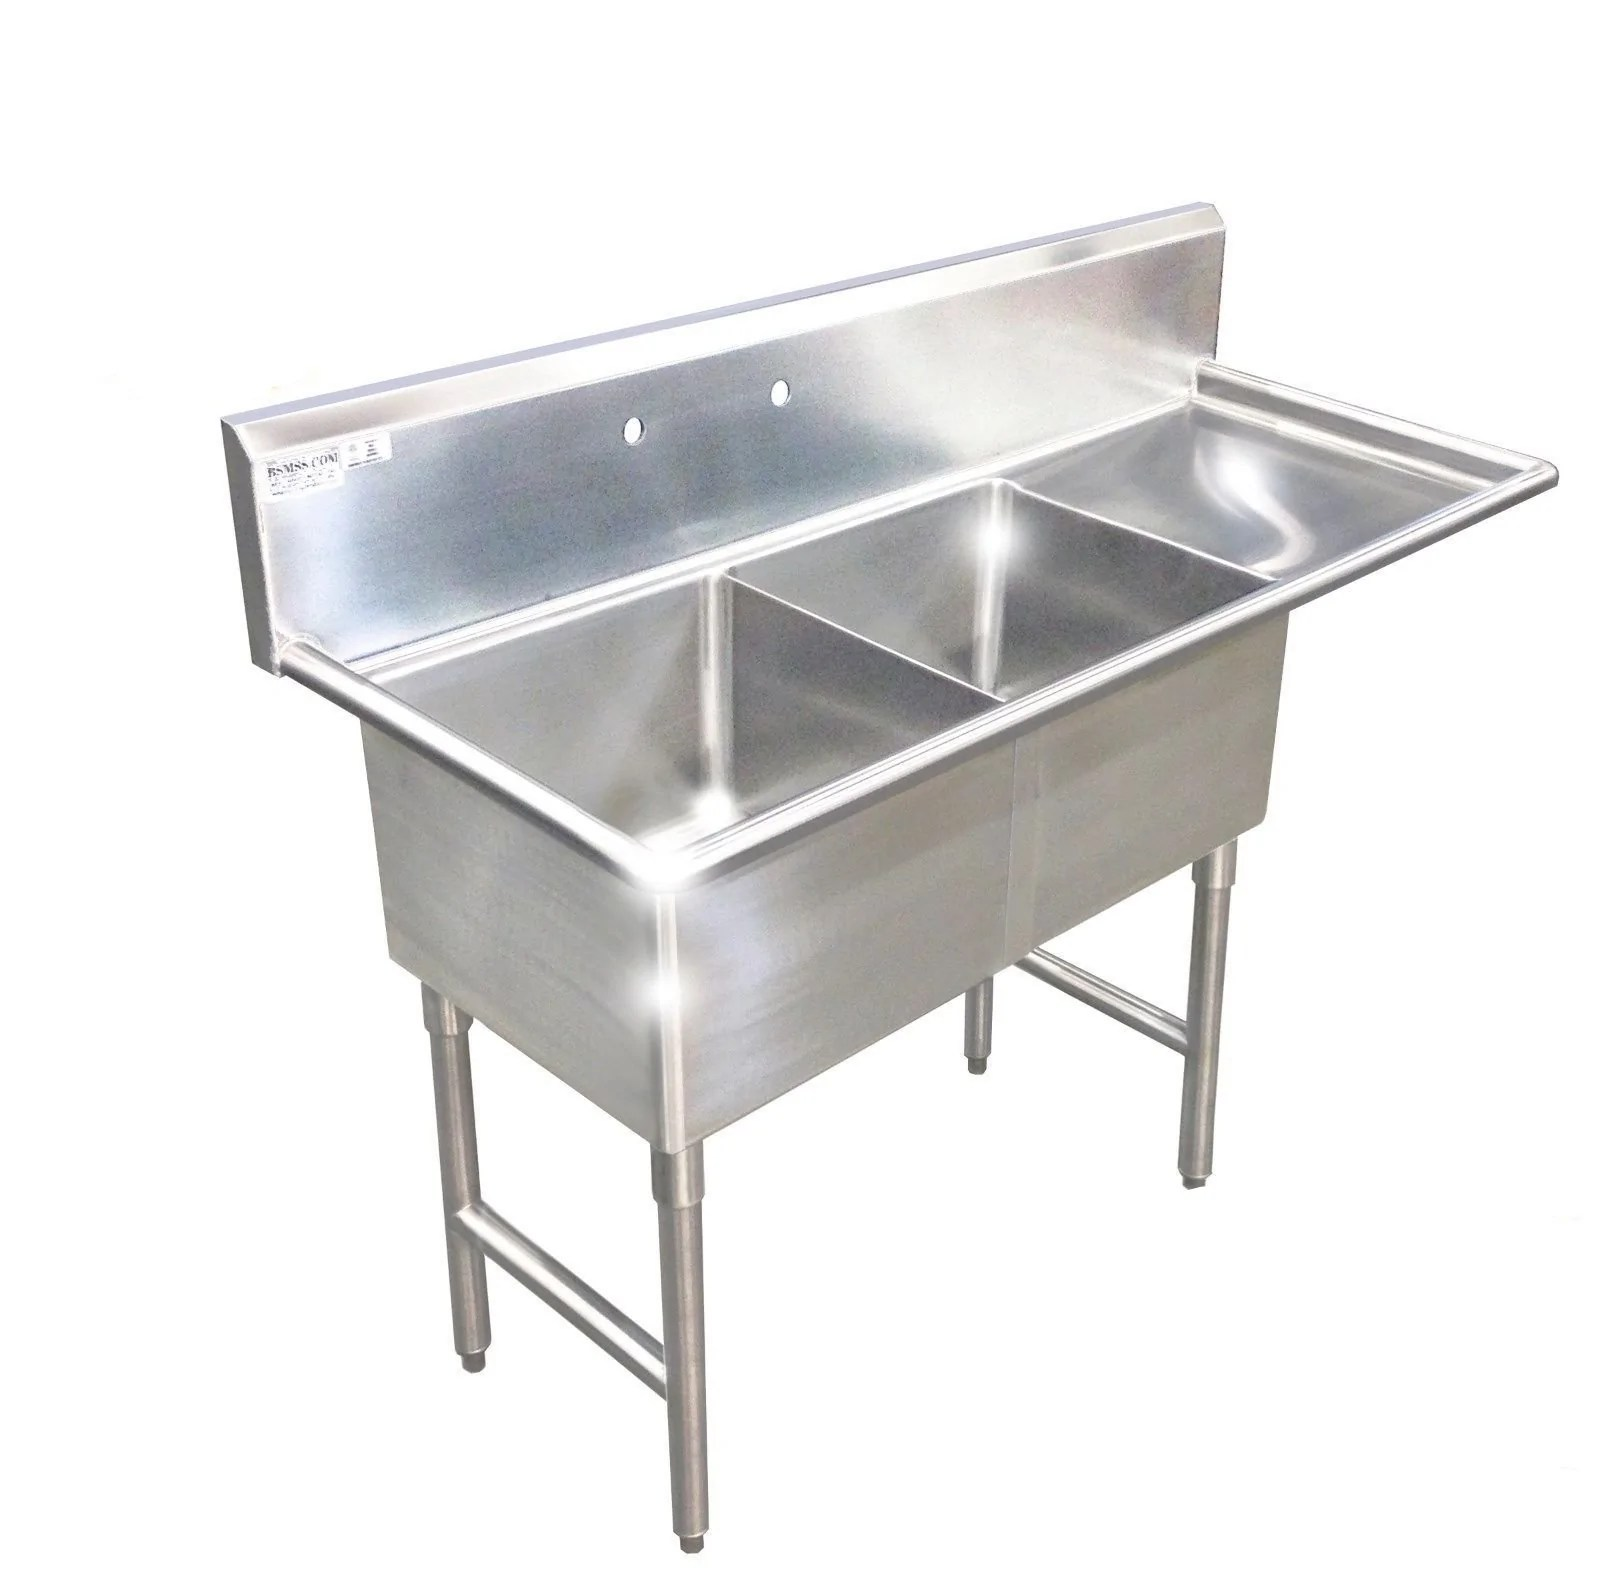 Heavy Duty Stainless Steel 14 Gauge 0 0781 Type 304 2 Compartment Restaurant Commercial Sink 56 1 2 With Drain Board S5624 181812 Commercial Stainless Steel Wash Up Sinks